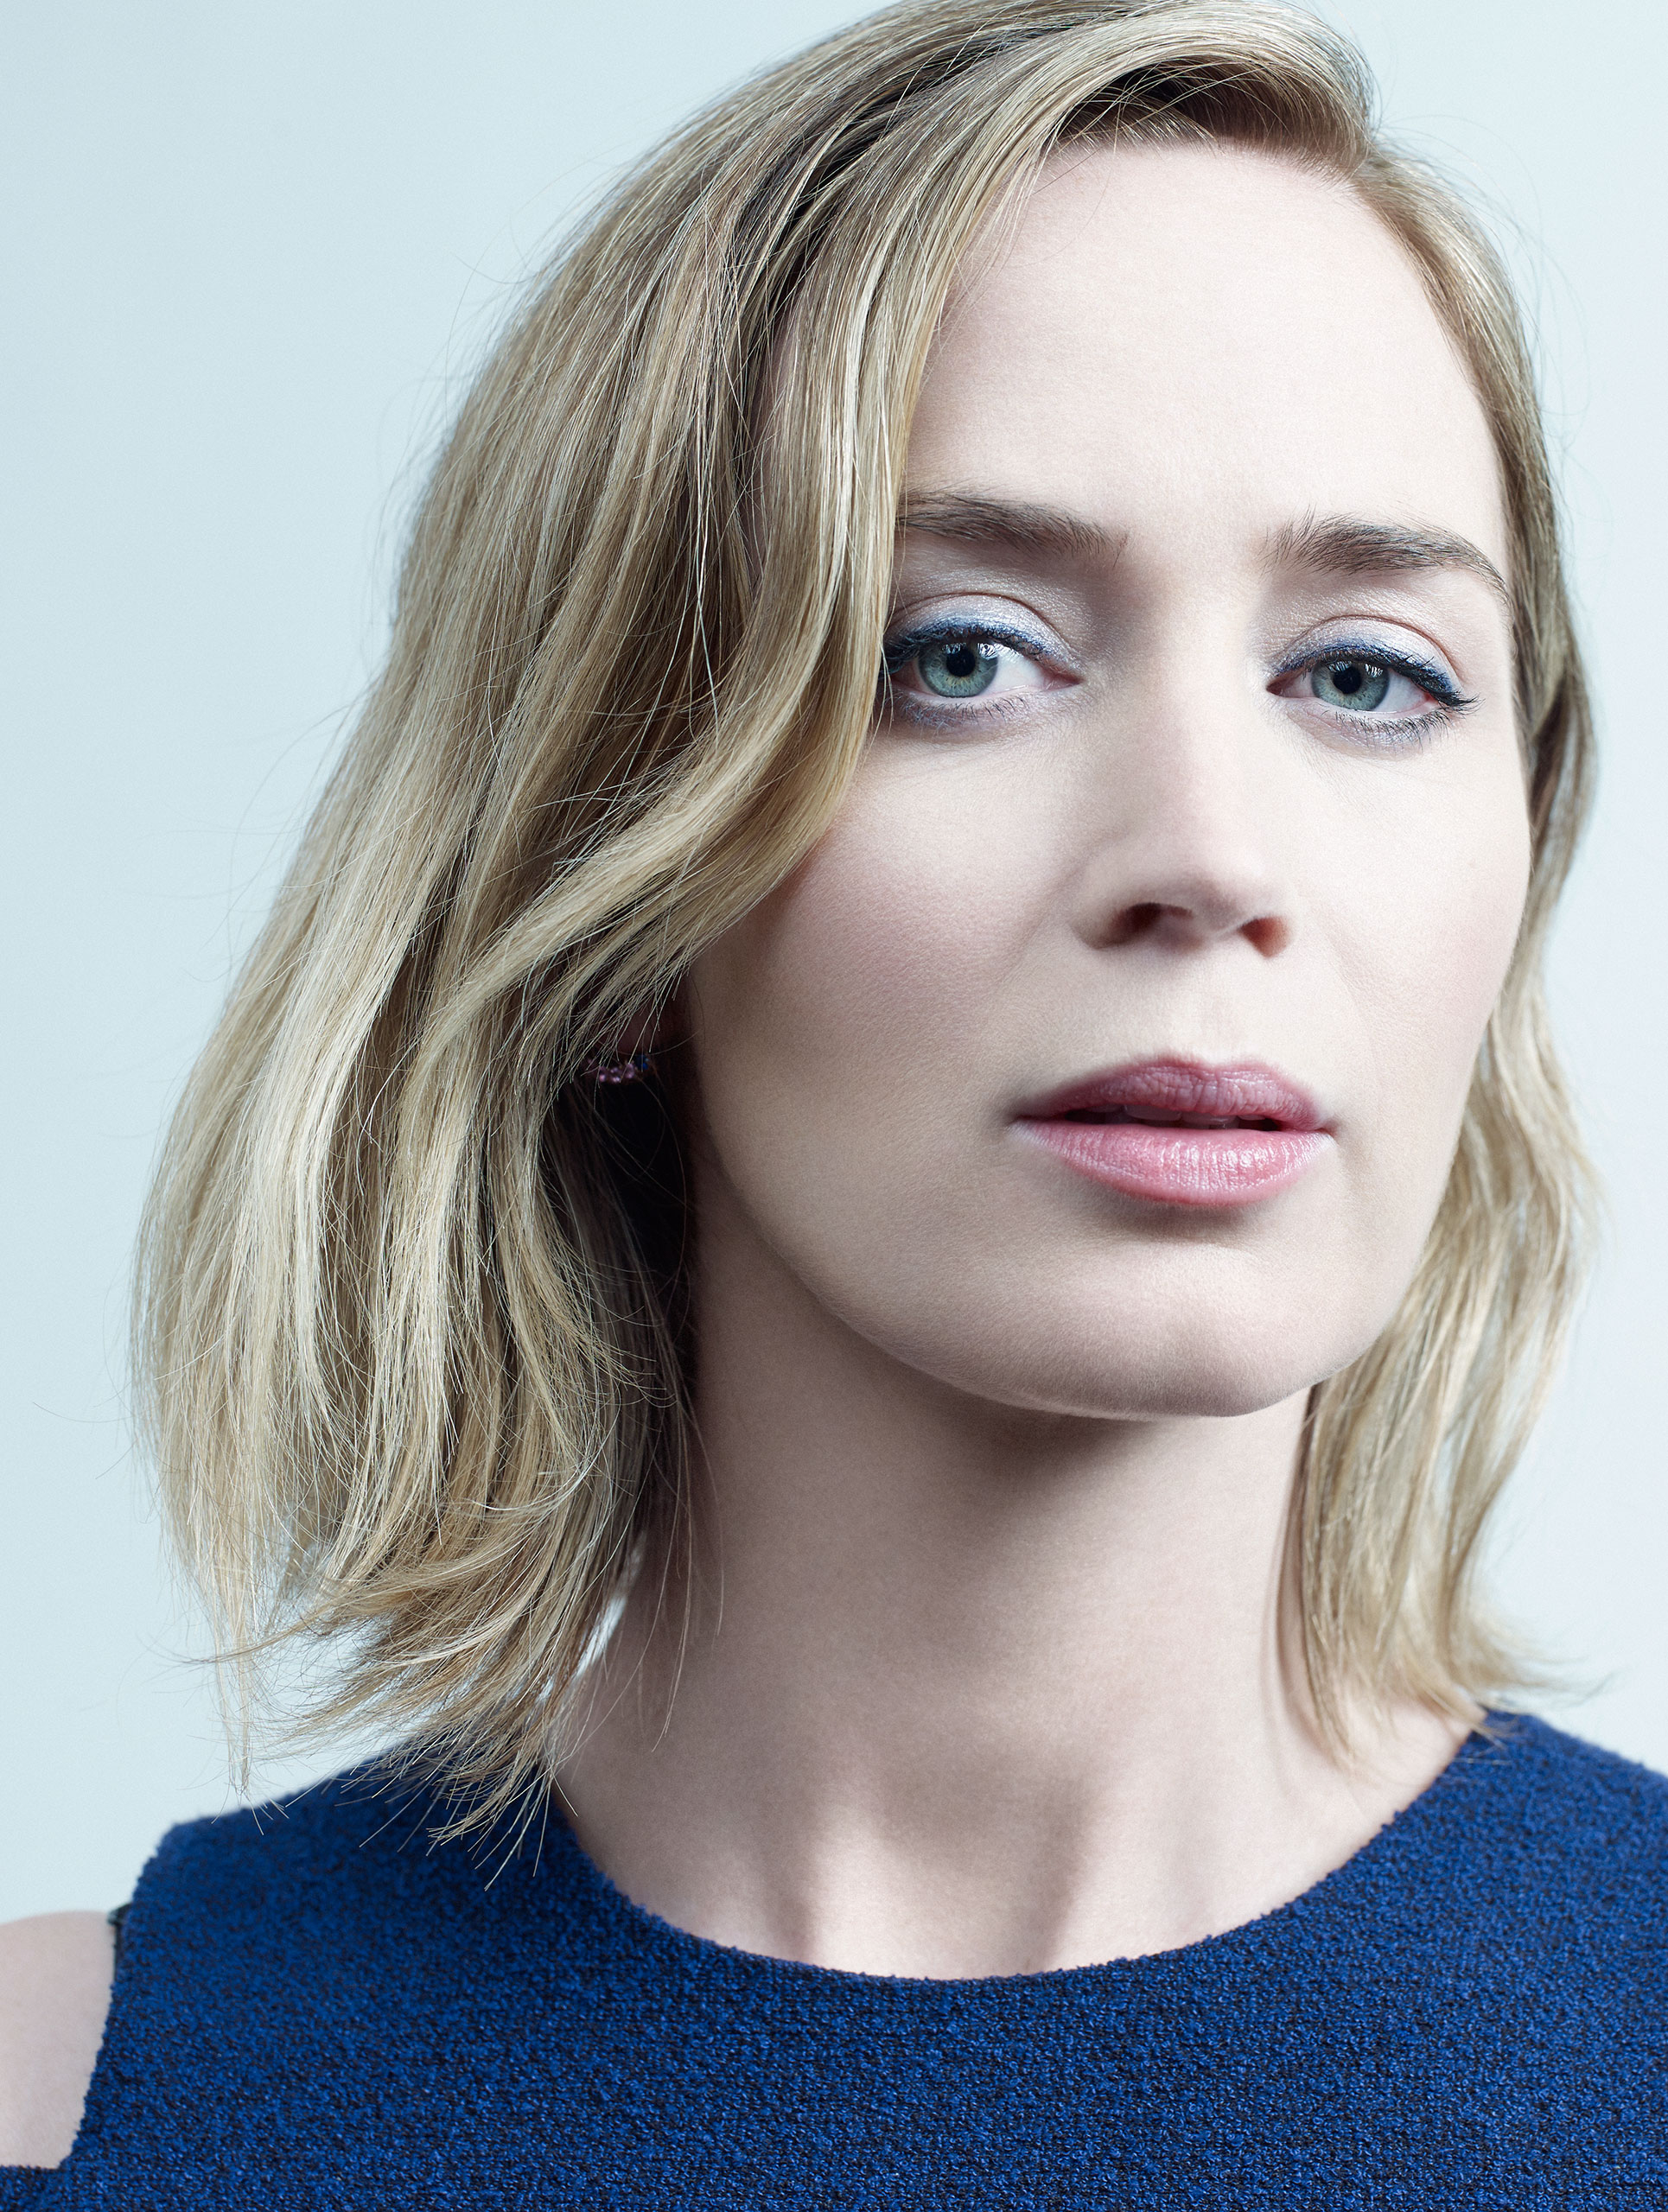 Emily Blunt photographed in New York City, August 25, 2016.From  2016 Fall Arts Preview.  Sept. 12 / Sept. 19, 2016 issue.